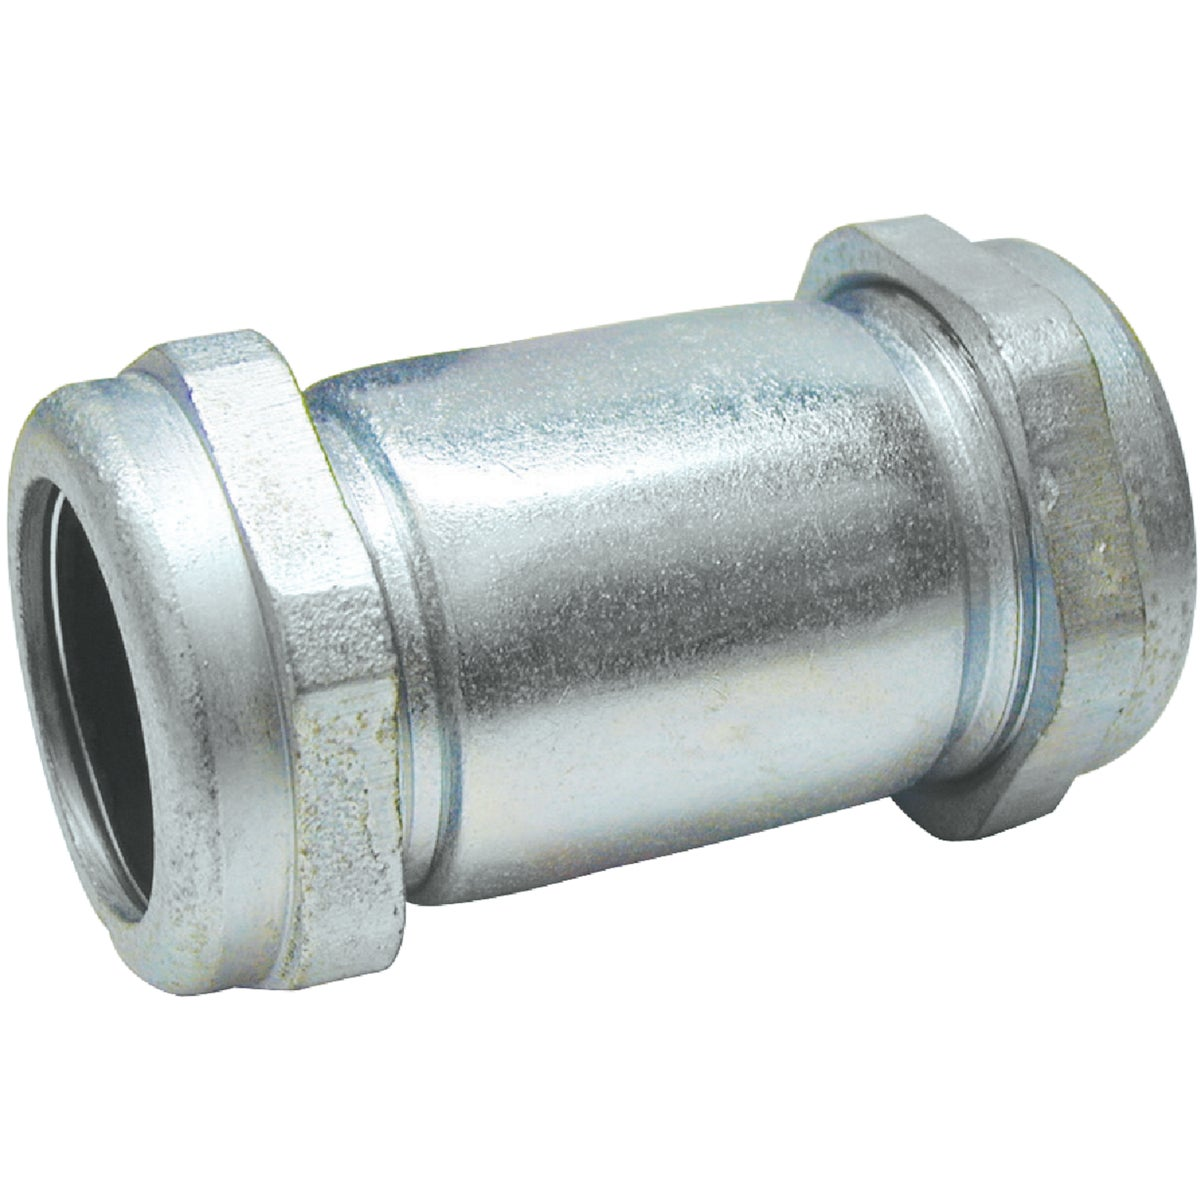 2X5-1/2 GALV COUPLING